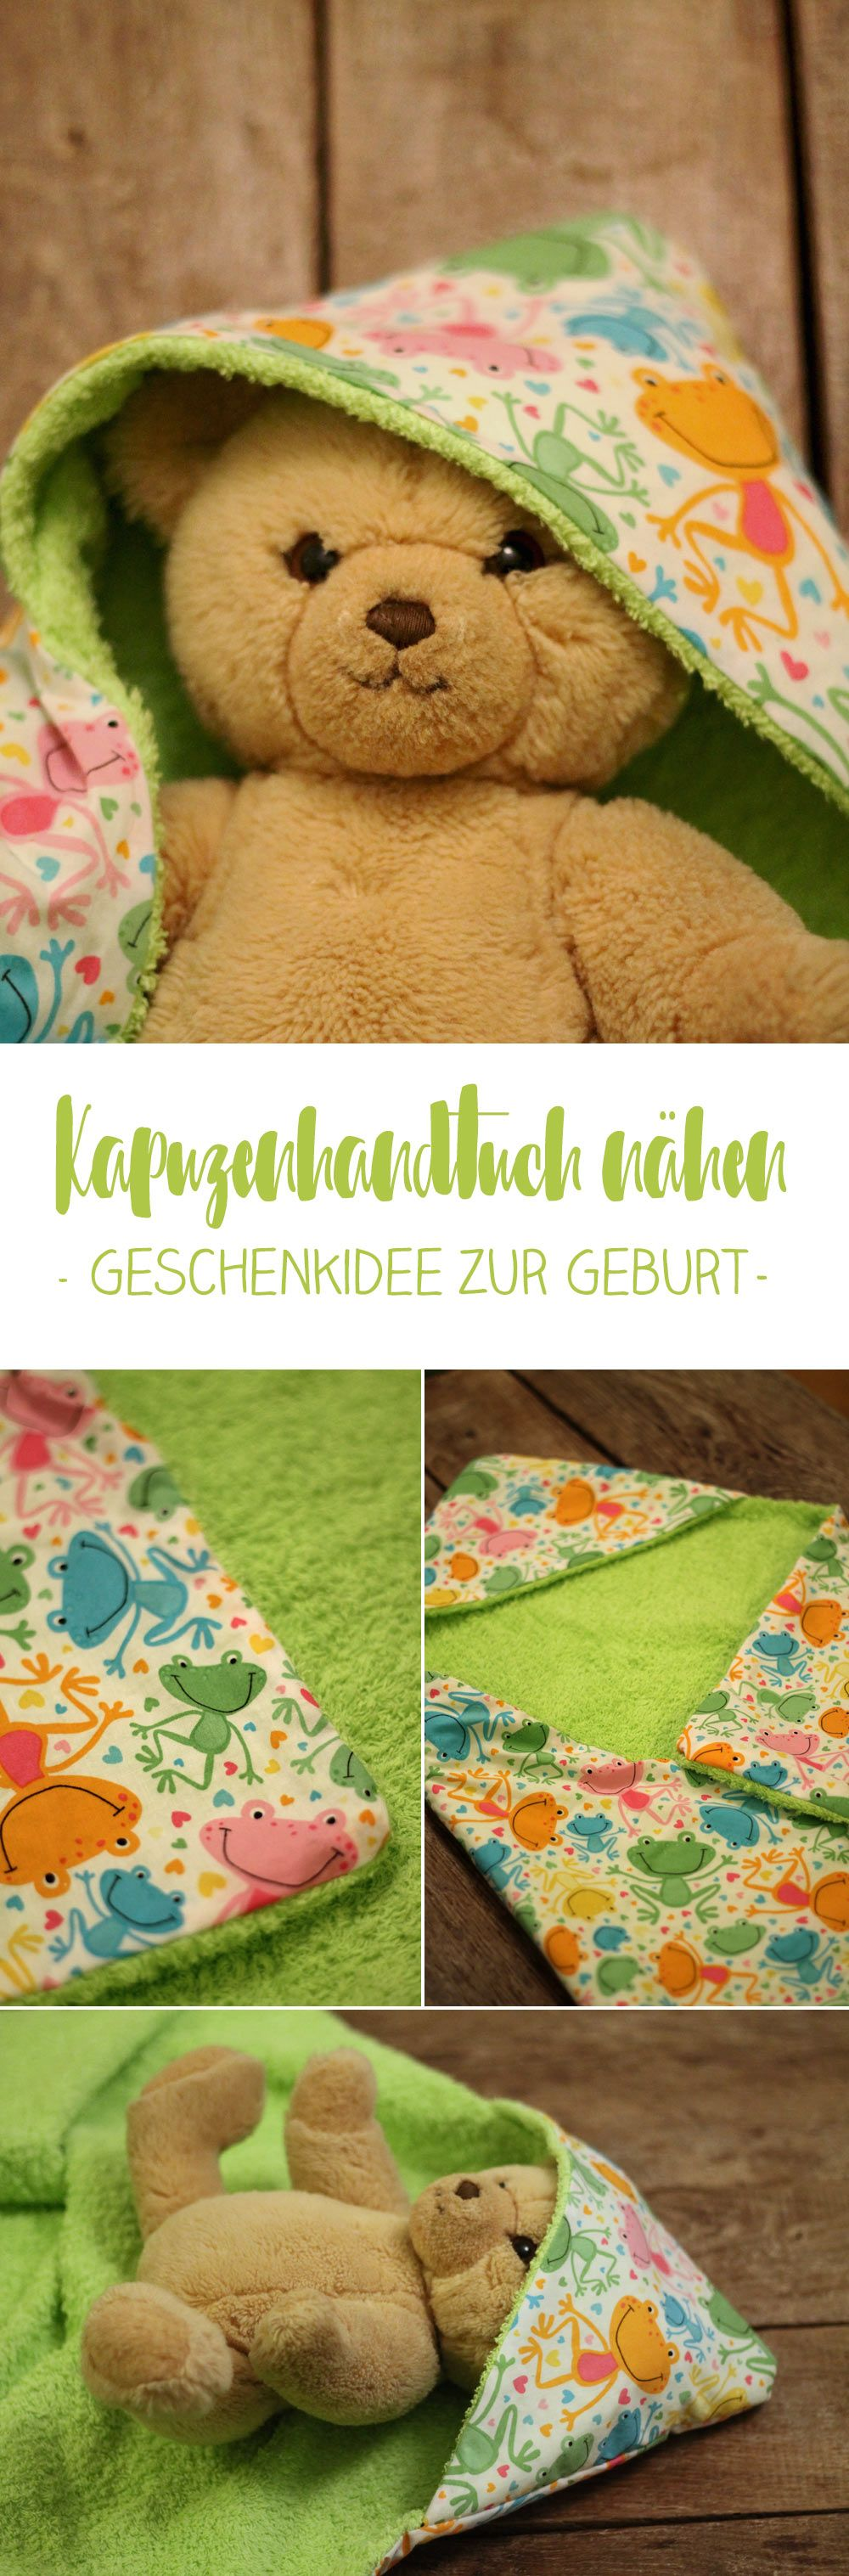 diy baby kapuzenhandtuch selbermachen n hideen the one about sewing projects pinterest. Black Bedroom Furniture Sets. Home Design Ideas